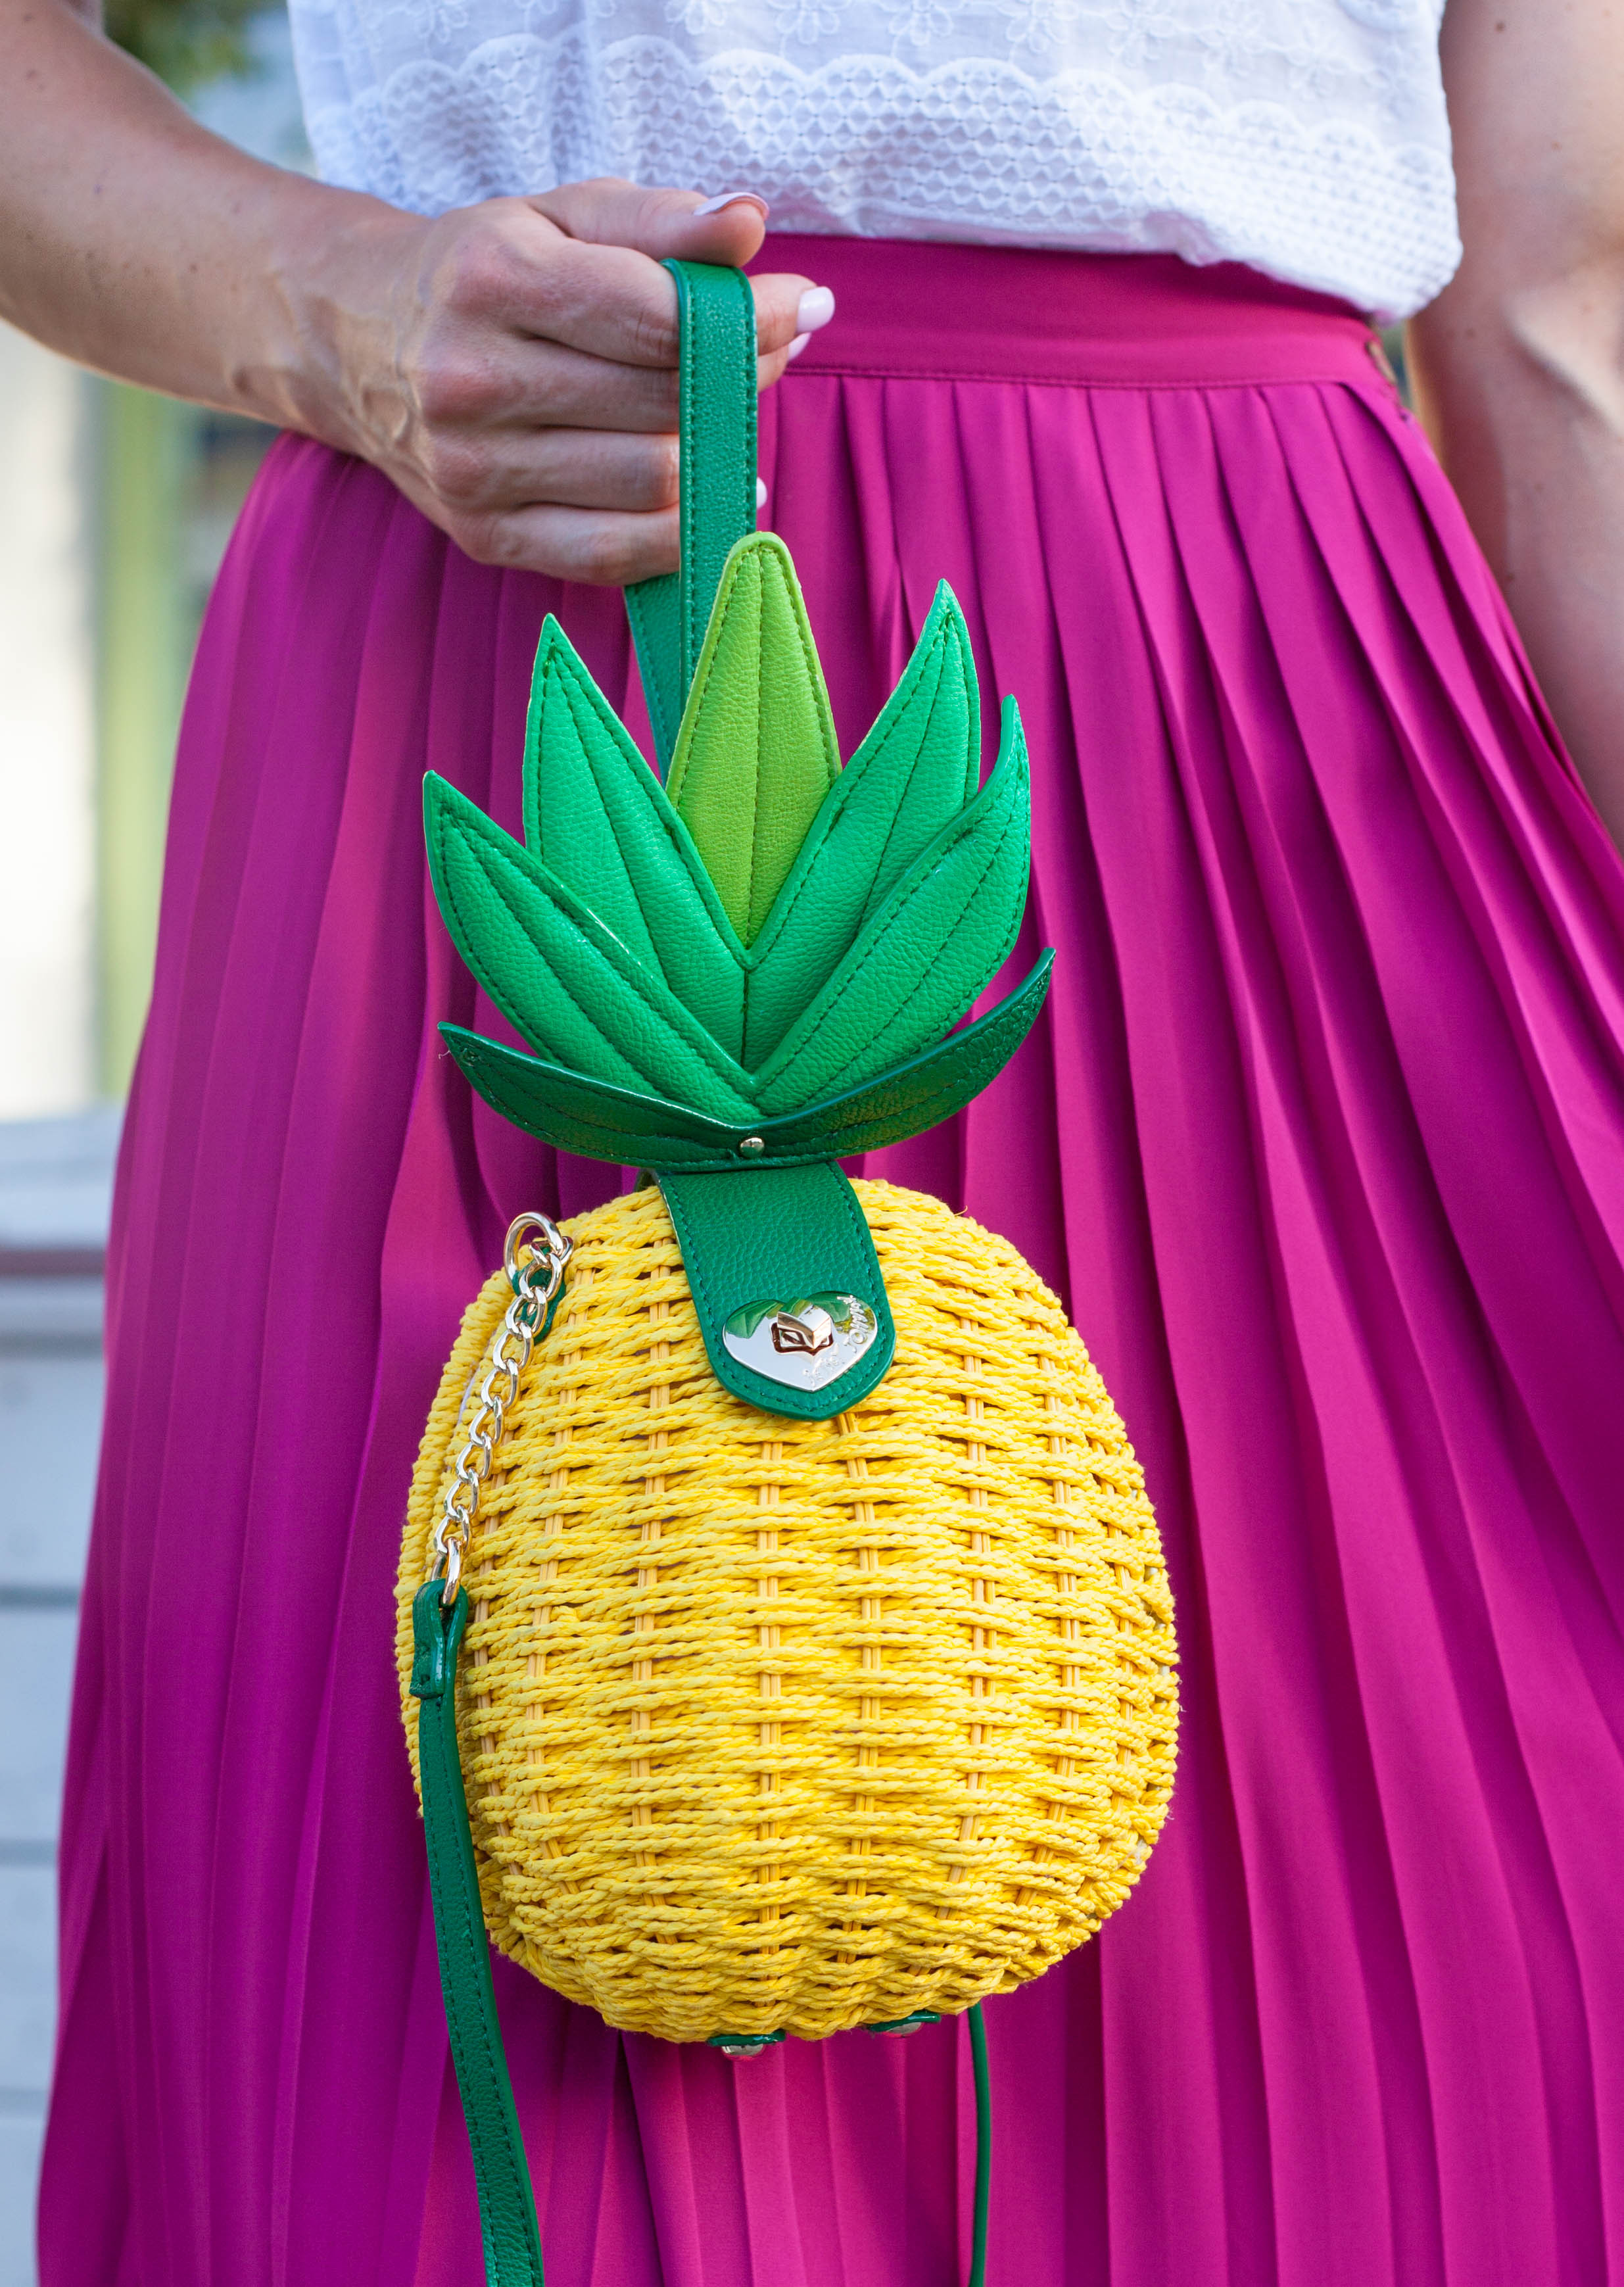 PaleOMG Fashion - Flowy Skirts, Tucked Skirts, and a Pineapple!